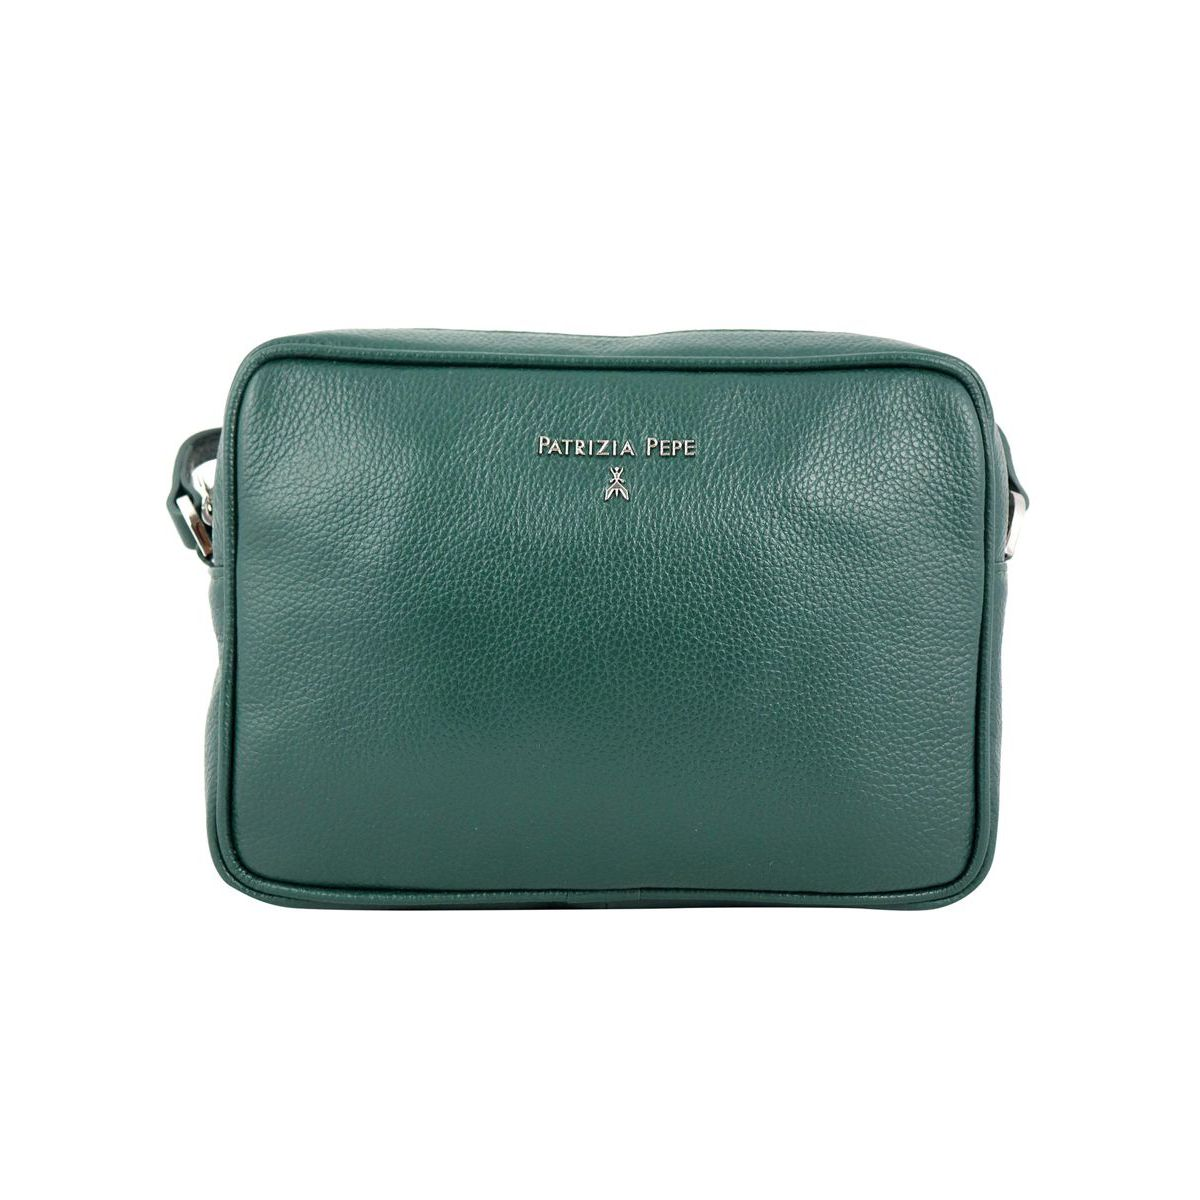 Leather shoulder bag with small embossed logo Green Patrizia Pepe